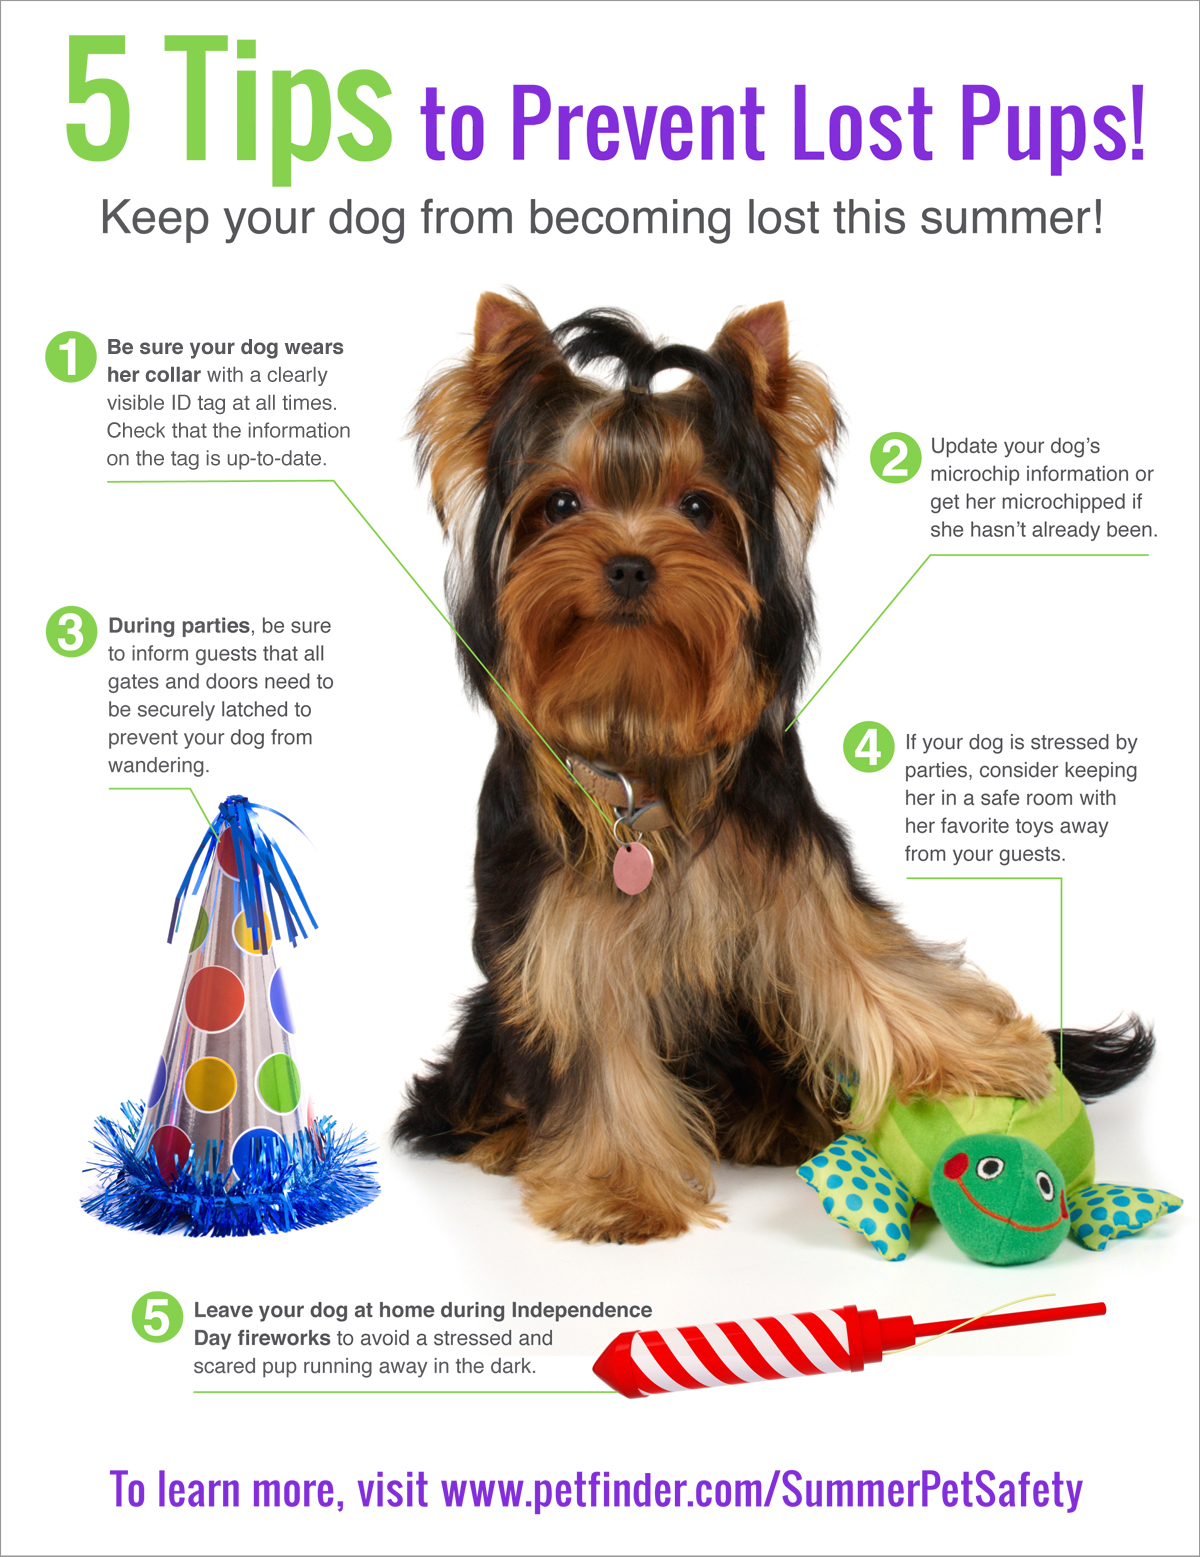 4th july pet safety tips